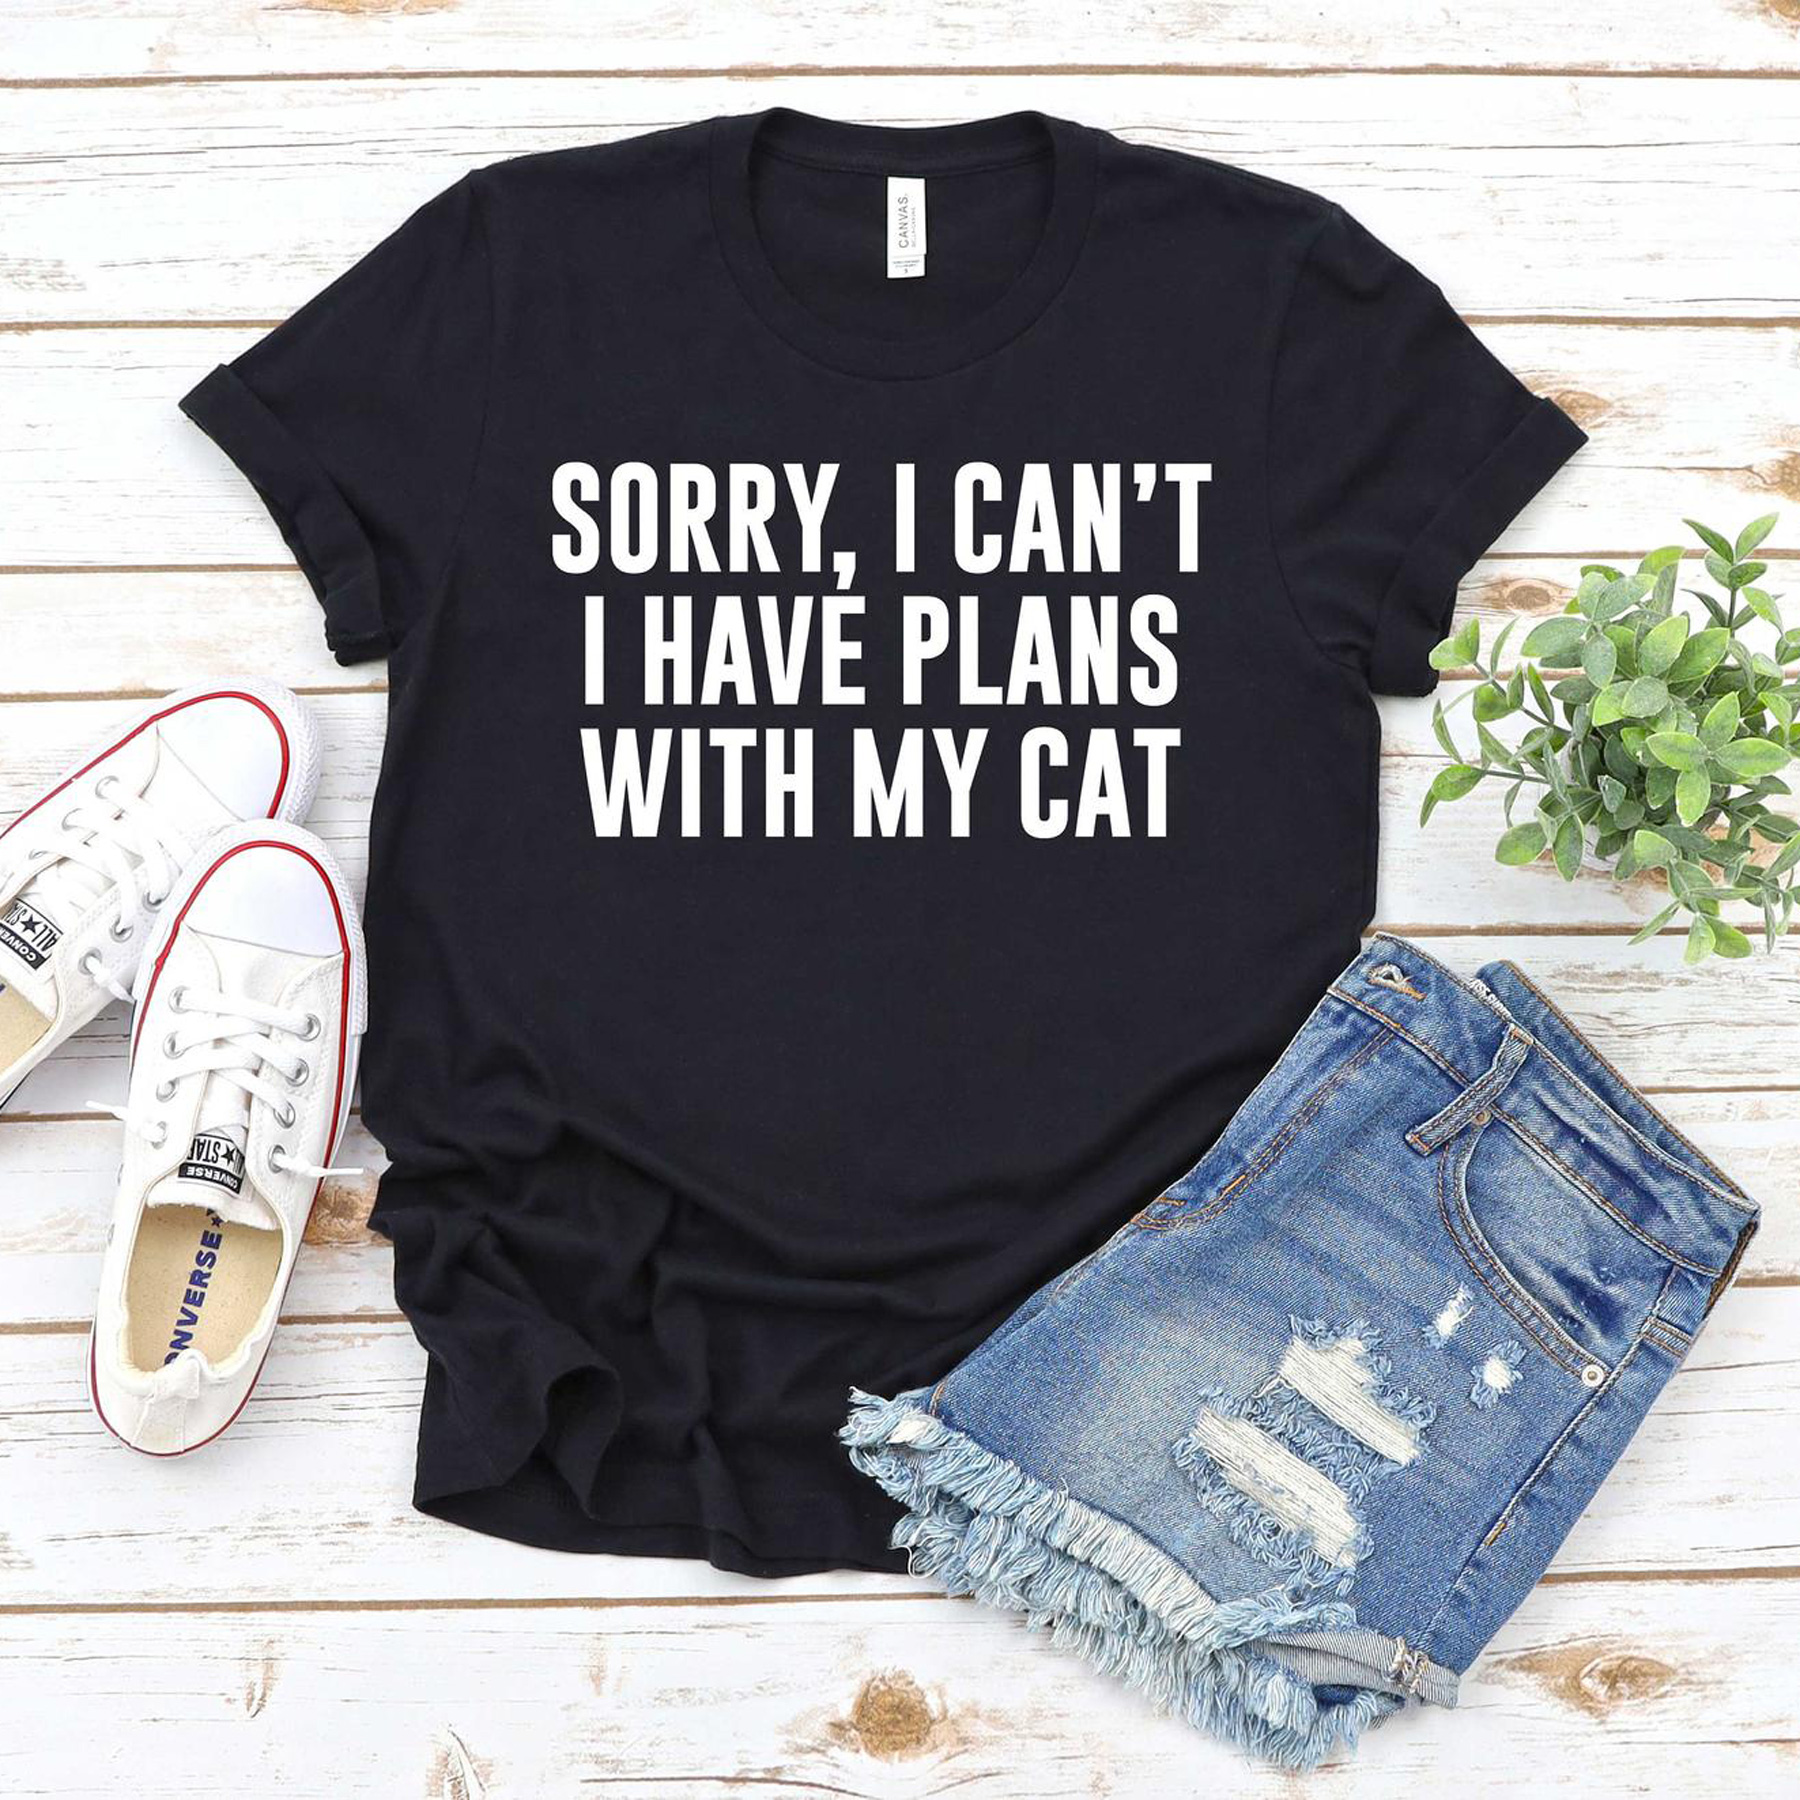 Funny Valentine's Day Gifts: Sorry, I can't I have plans with my cat T-shirt from etsy